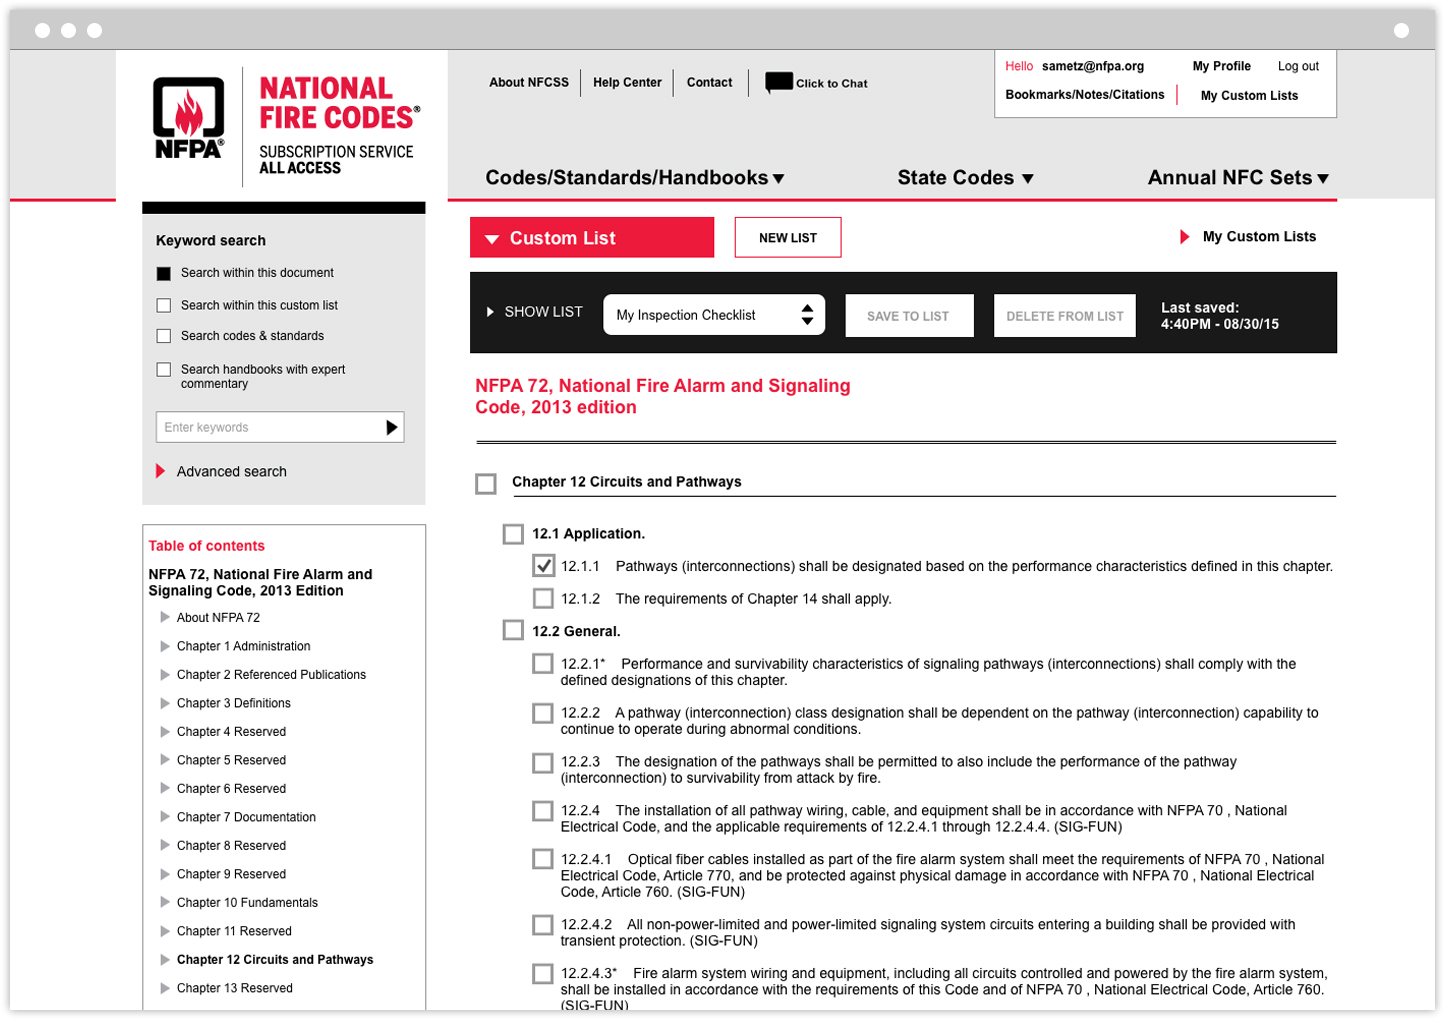 National Fire Codes Subscription Service web tool interior page